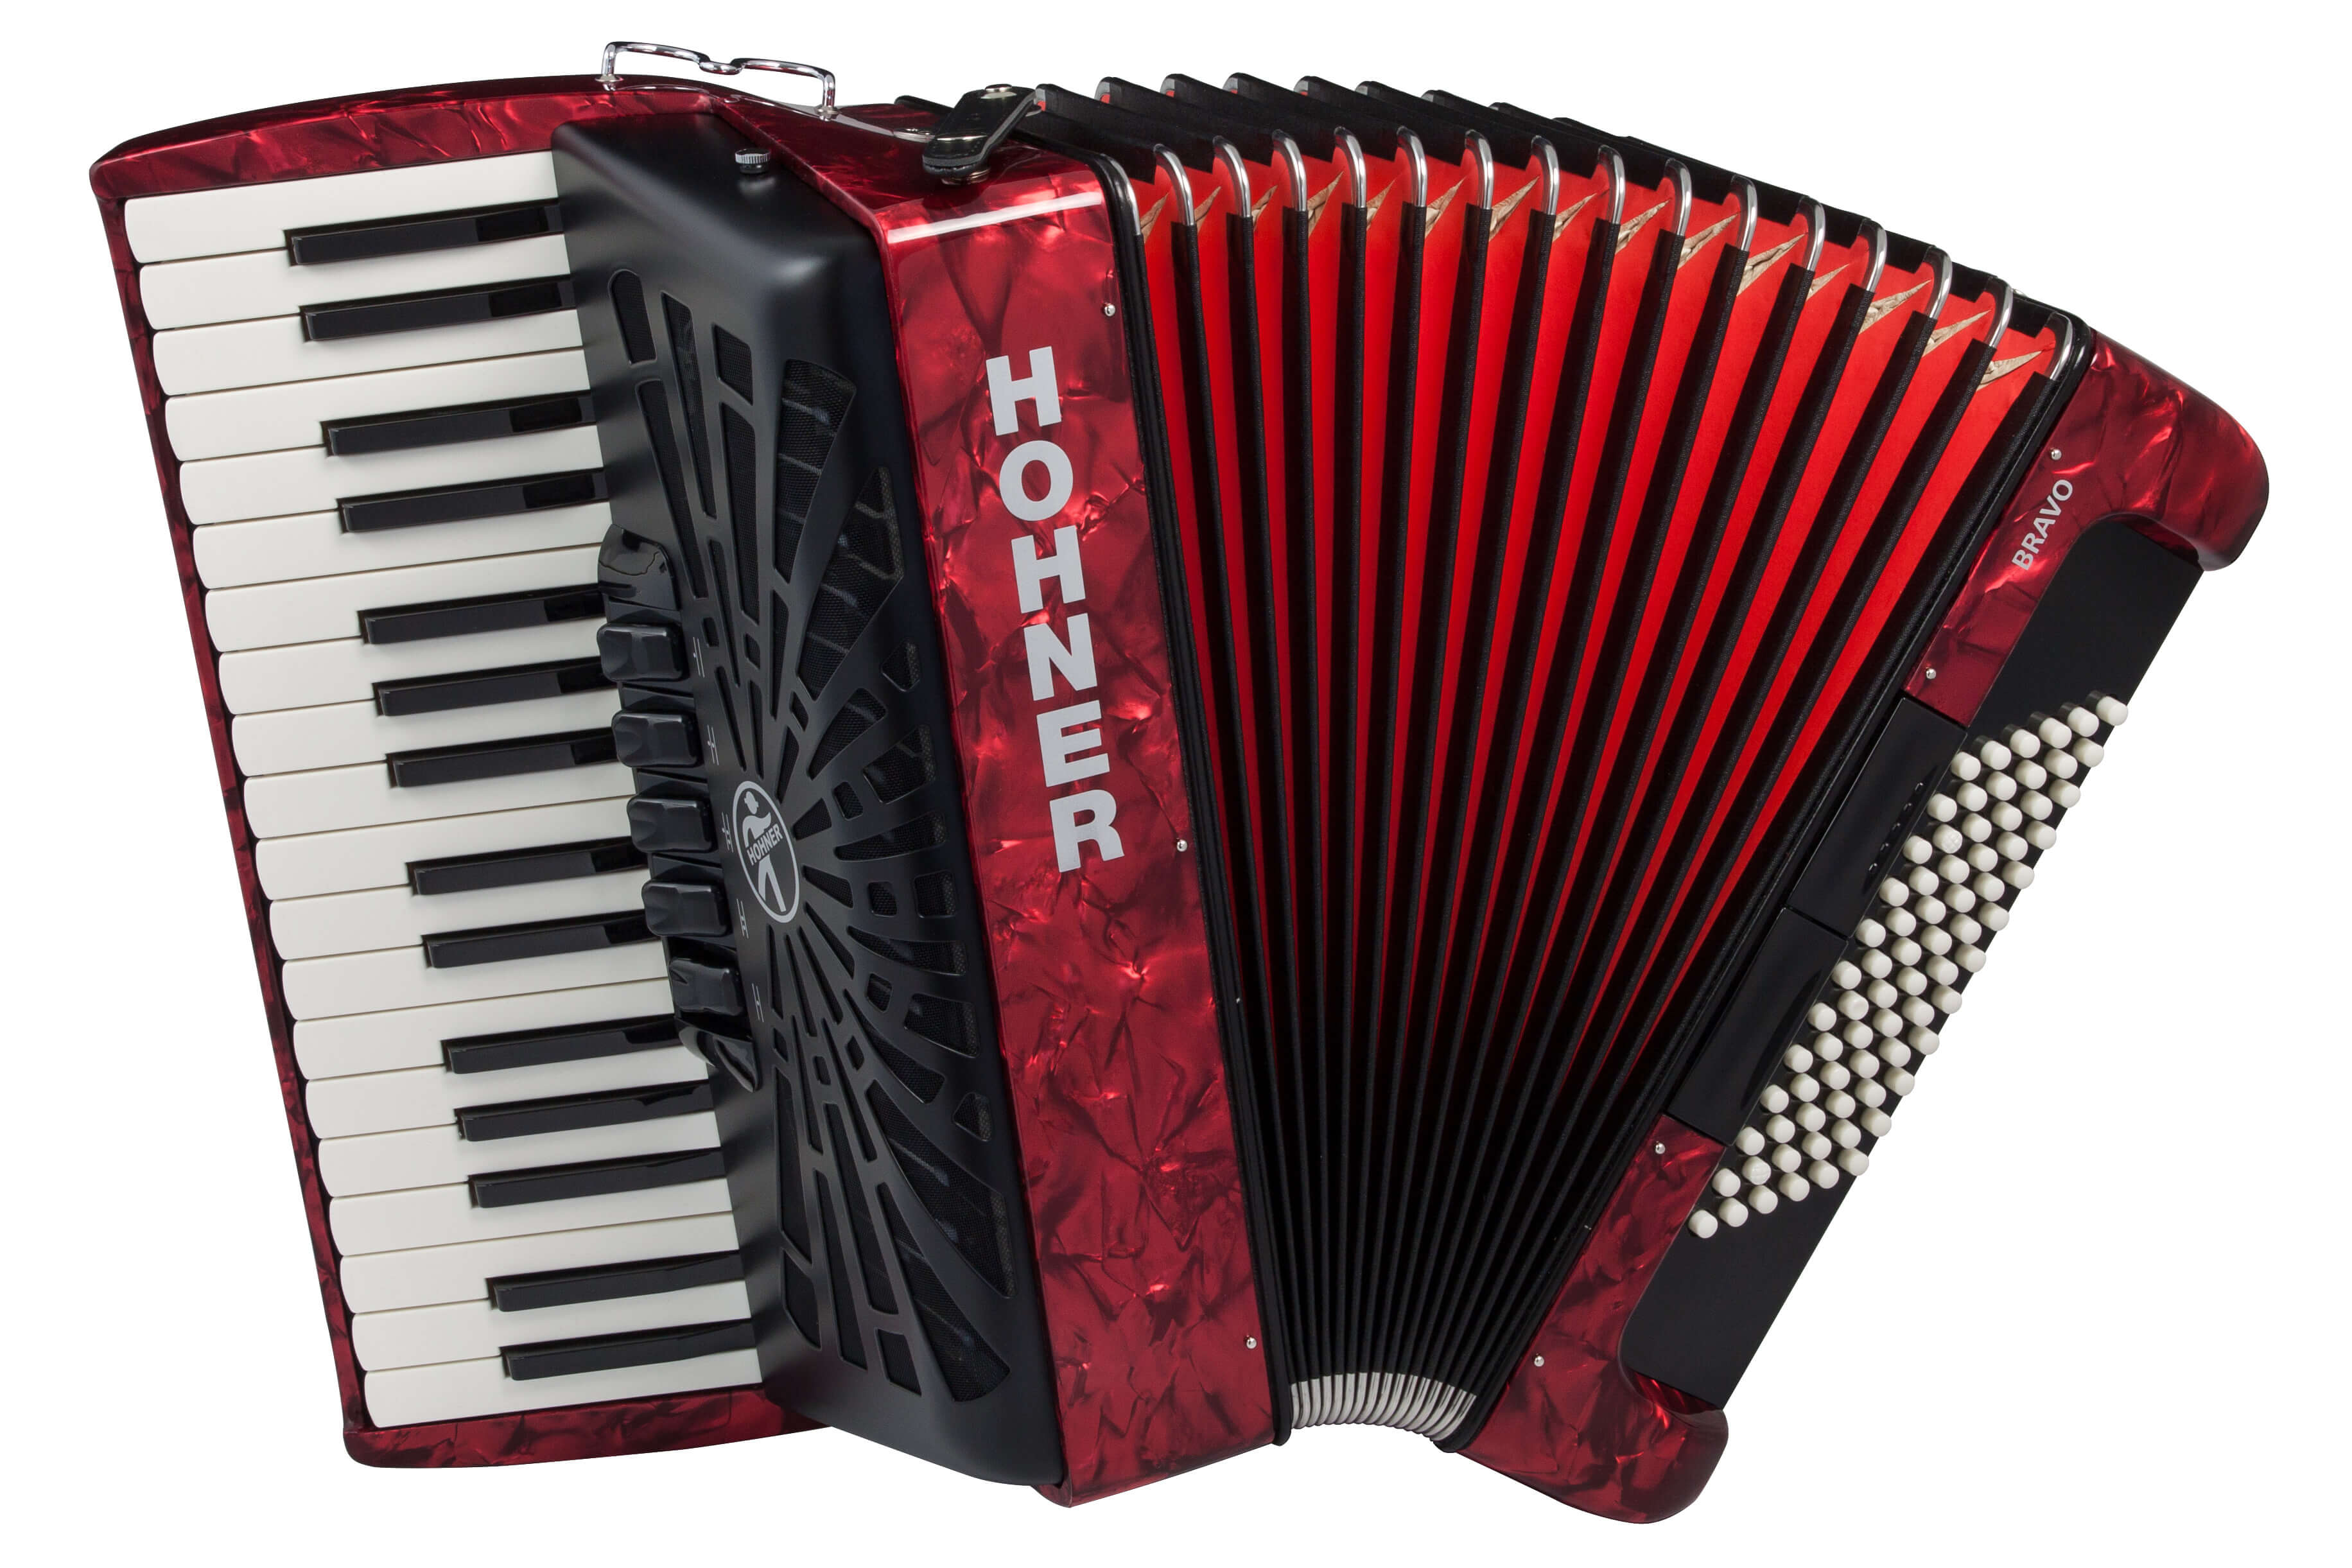 Hohner Bravo III 72 button accordion